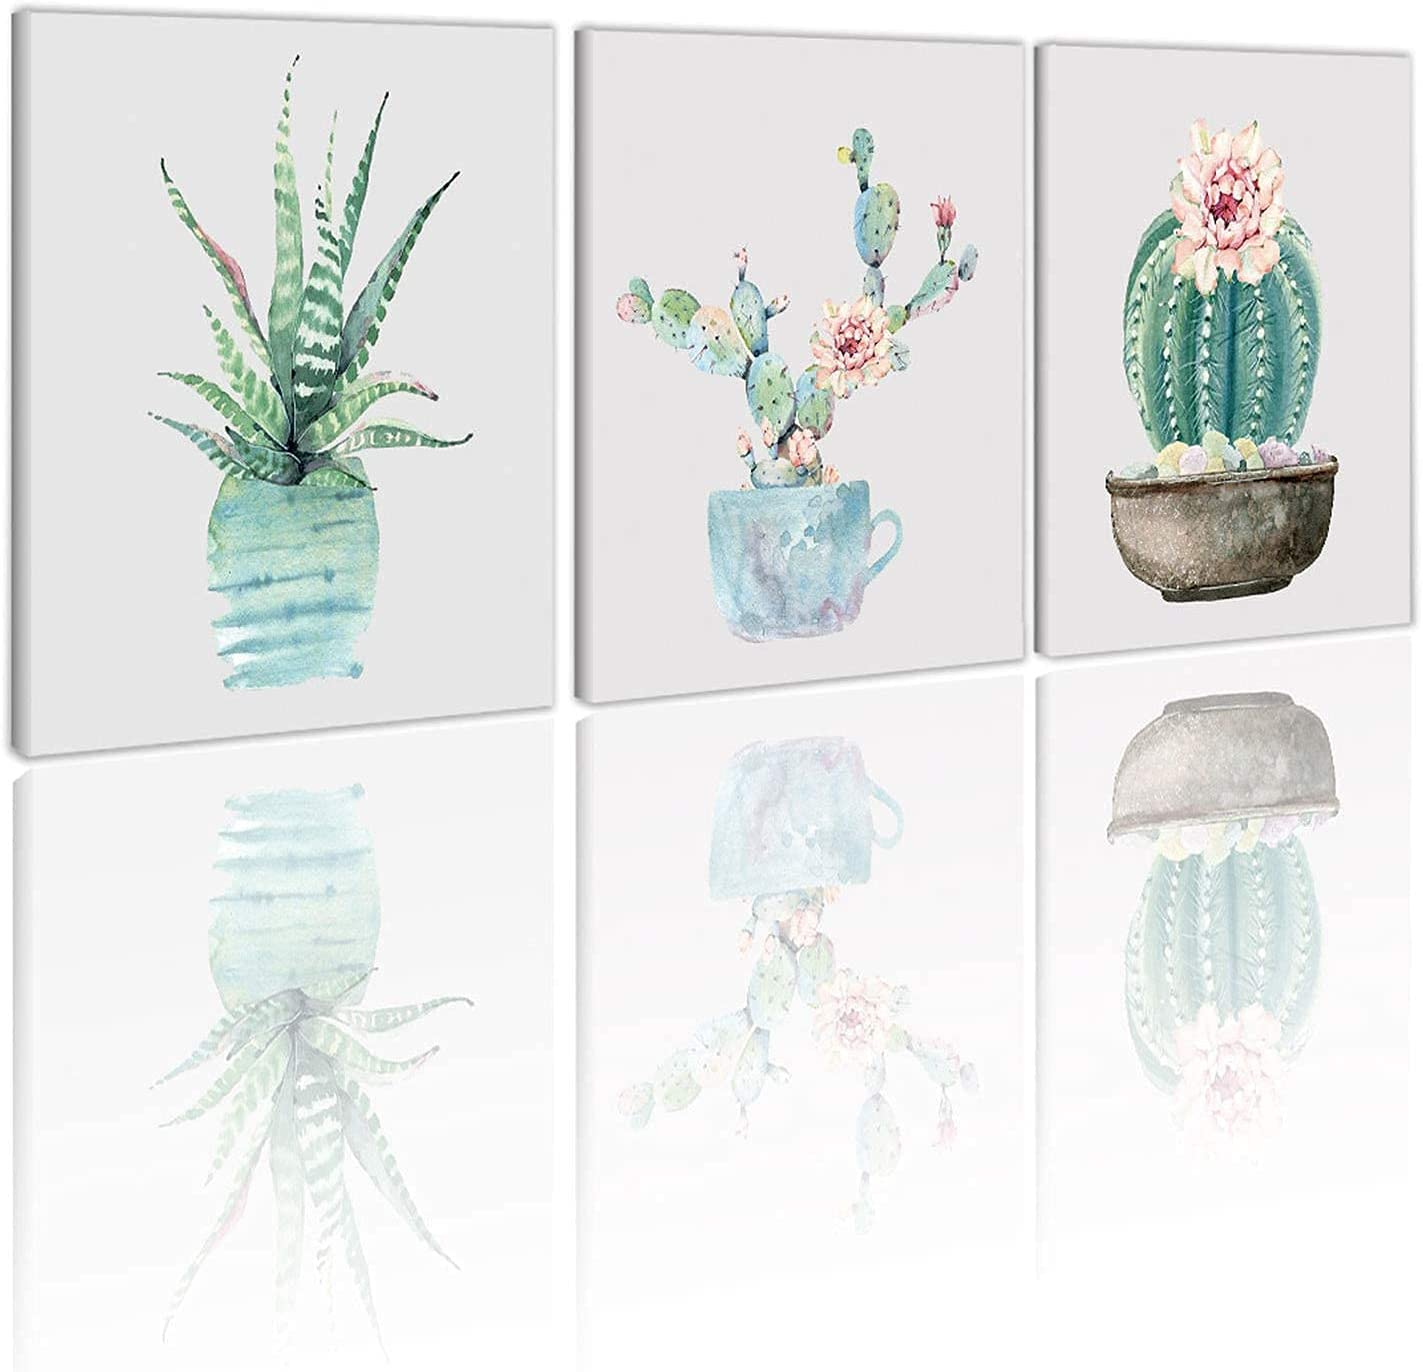 HVEST Cactus Wall Art Framed 3Pieces Tropical Succulent Plants Potted Canvas Abstract Painting Modern Artwork for Bathroom Home Office Room Drom Wall Decor Poster, 12X16 Inchs